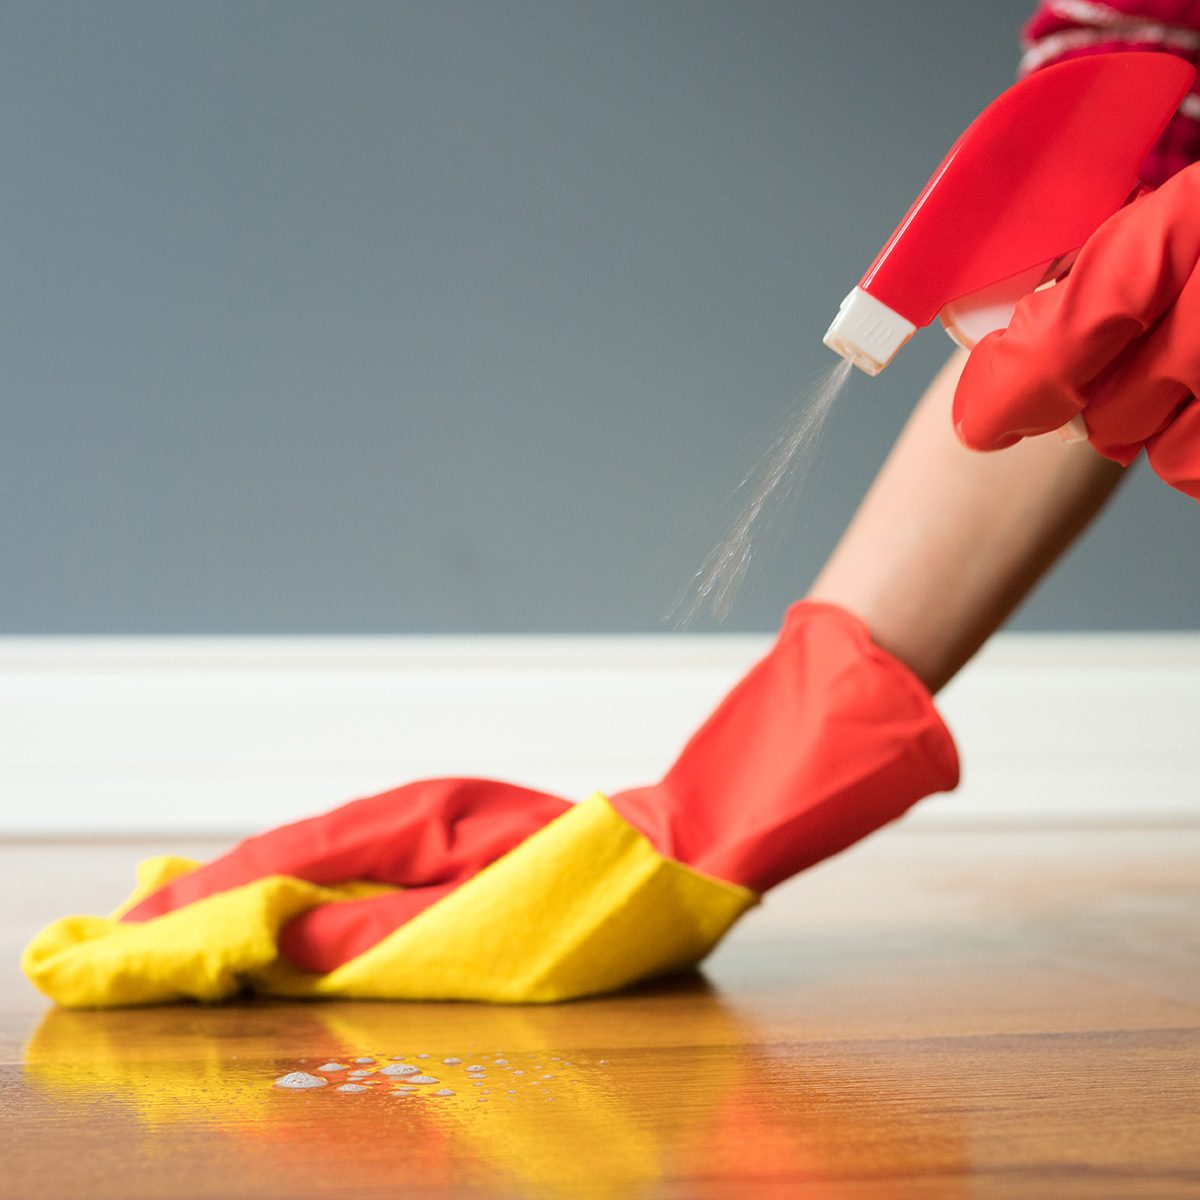 Cleaning parquet with yellow cloth